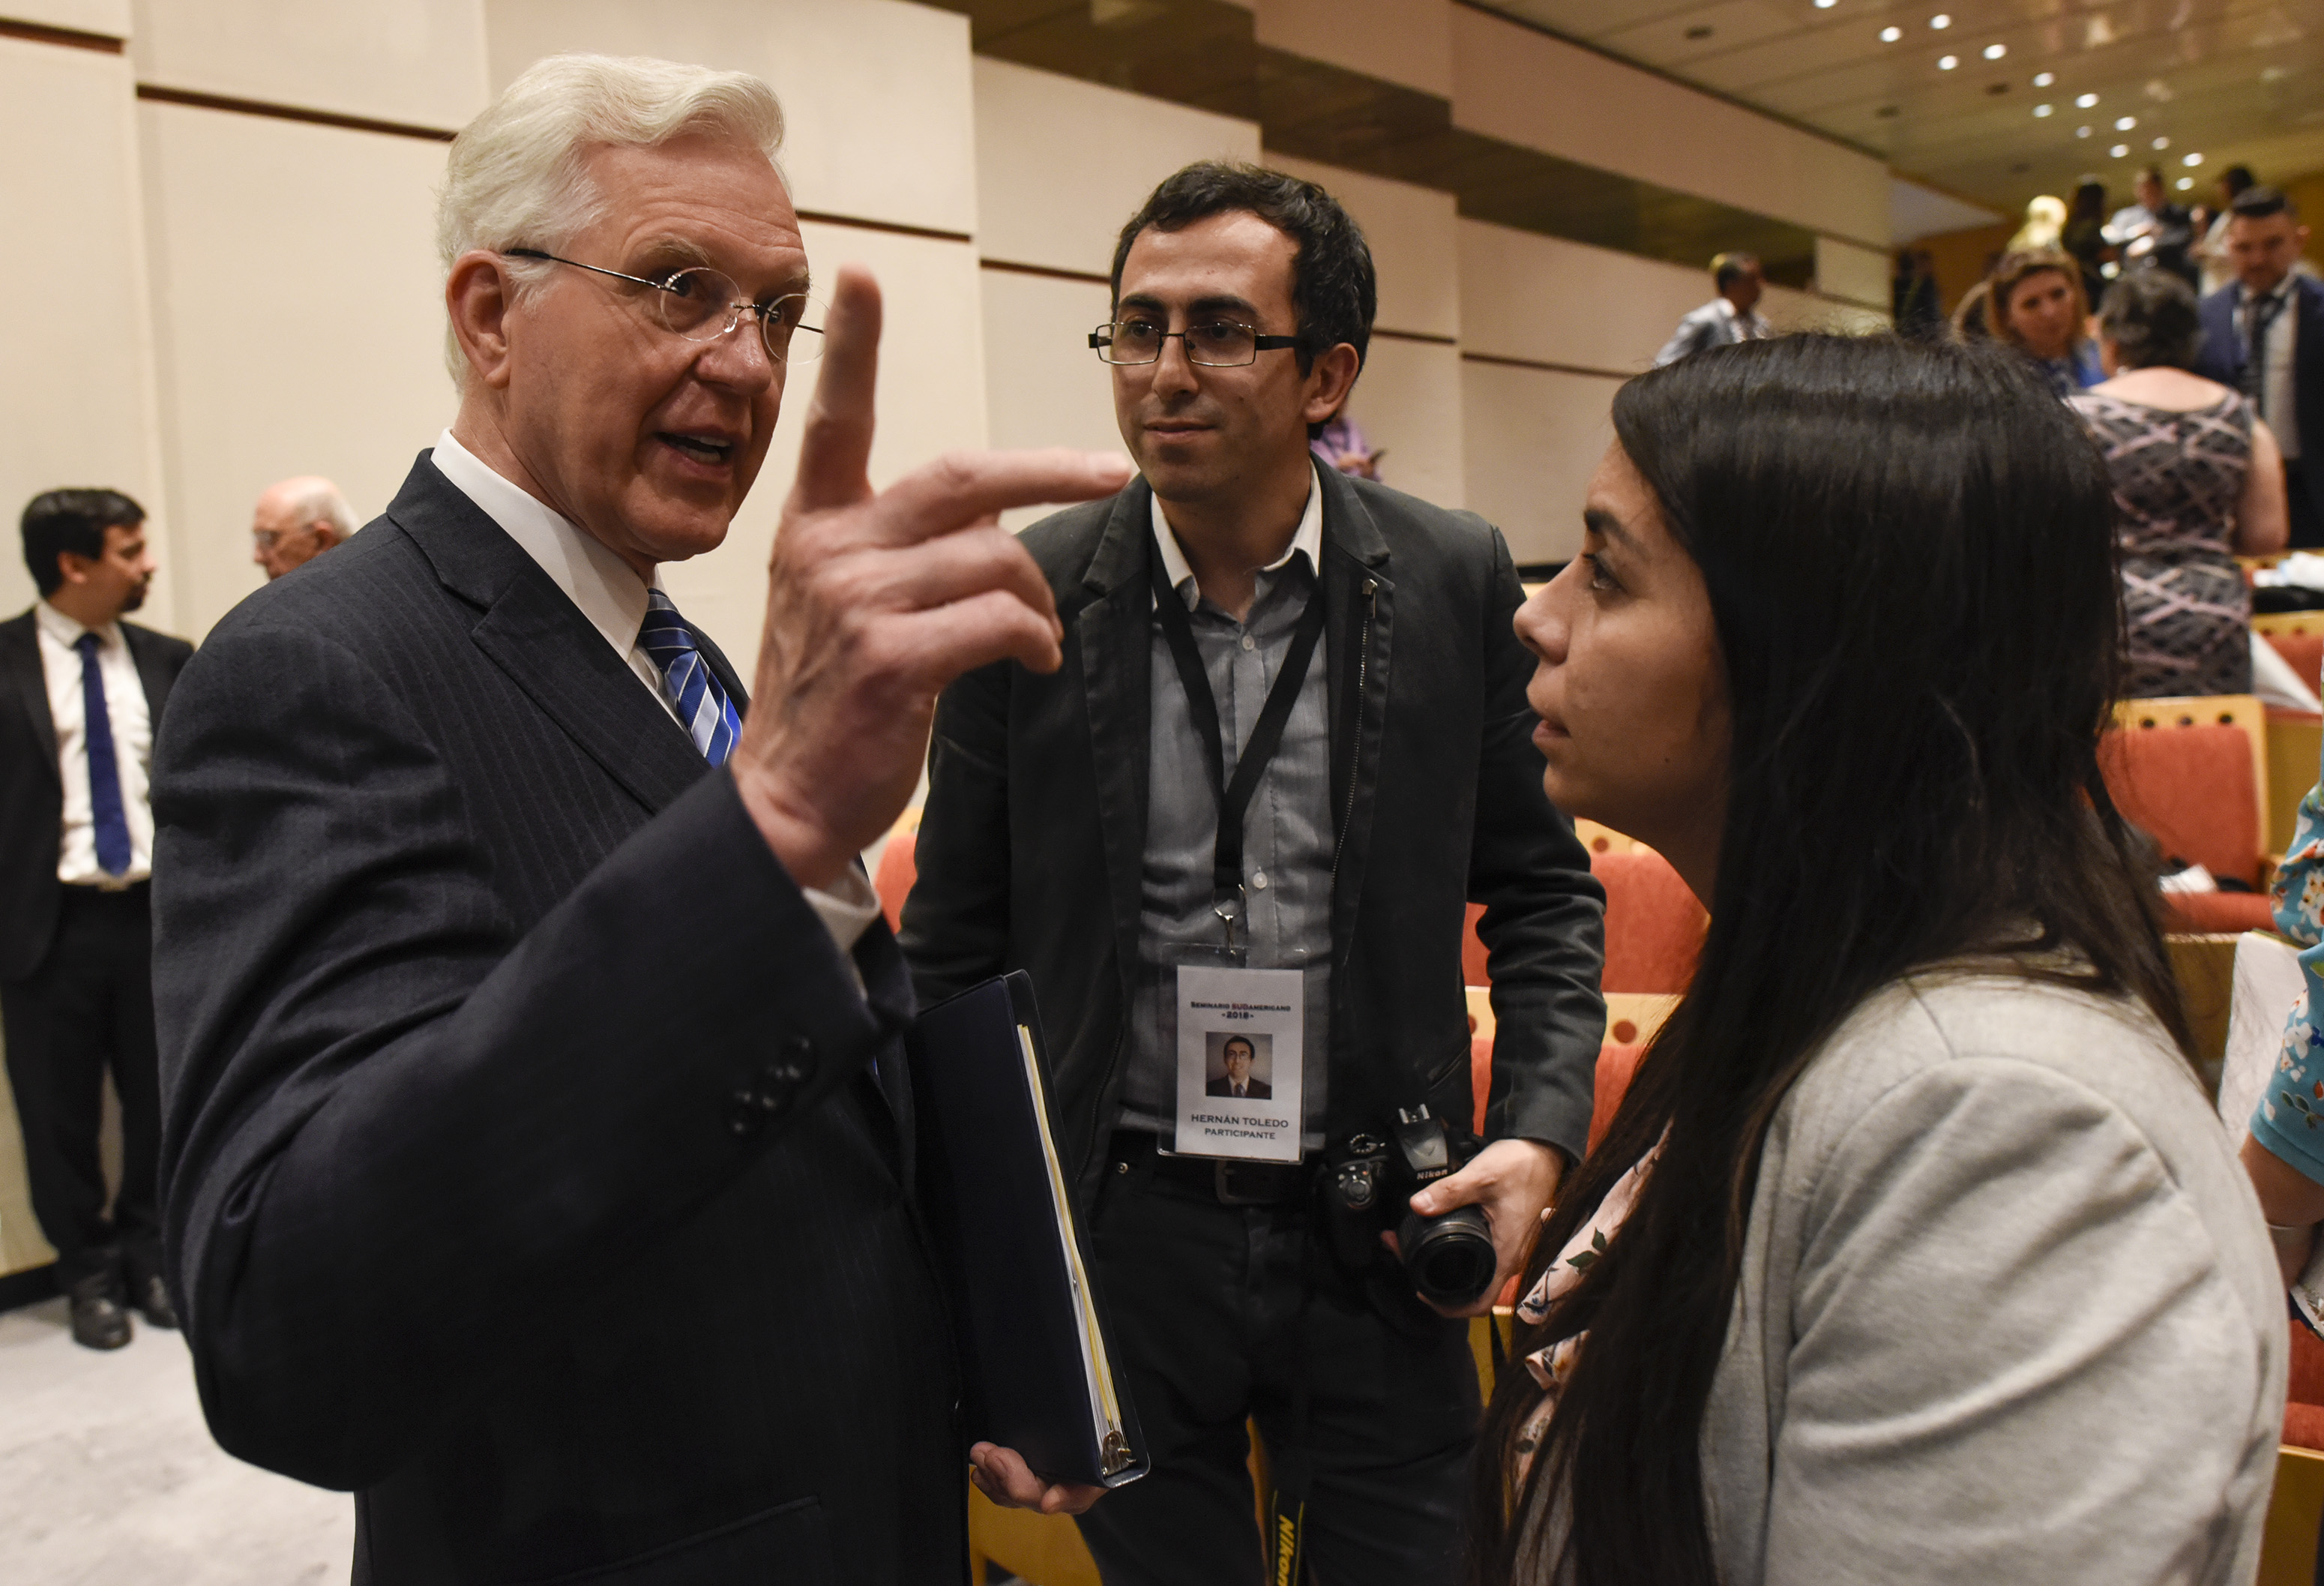 Elder D. Todd Christofferson of the Quorum of the Twelve Apostles speaks with other forum attendees during a break at the G20 Interfaith Forum in Buenos Aires, Argentina, on Wednesday, Sept. 26, 2018.